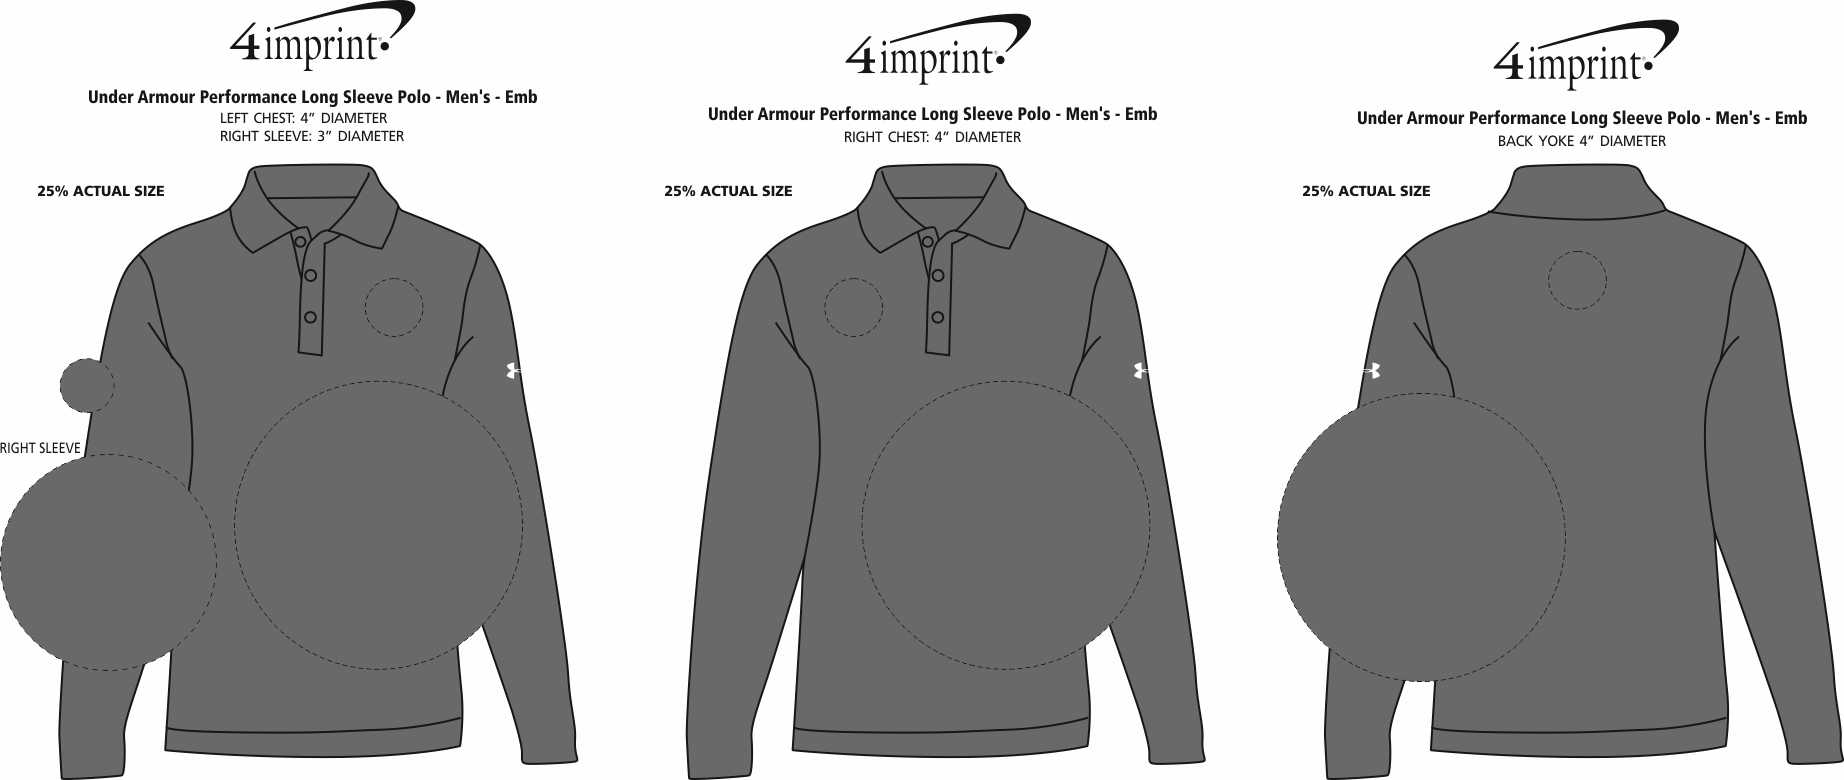 bbbd5141 ... Under Armour Performance Long Sleeve Polo - Men's -. 360° view · View  Imprint